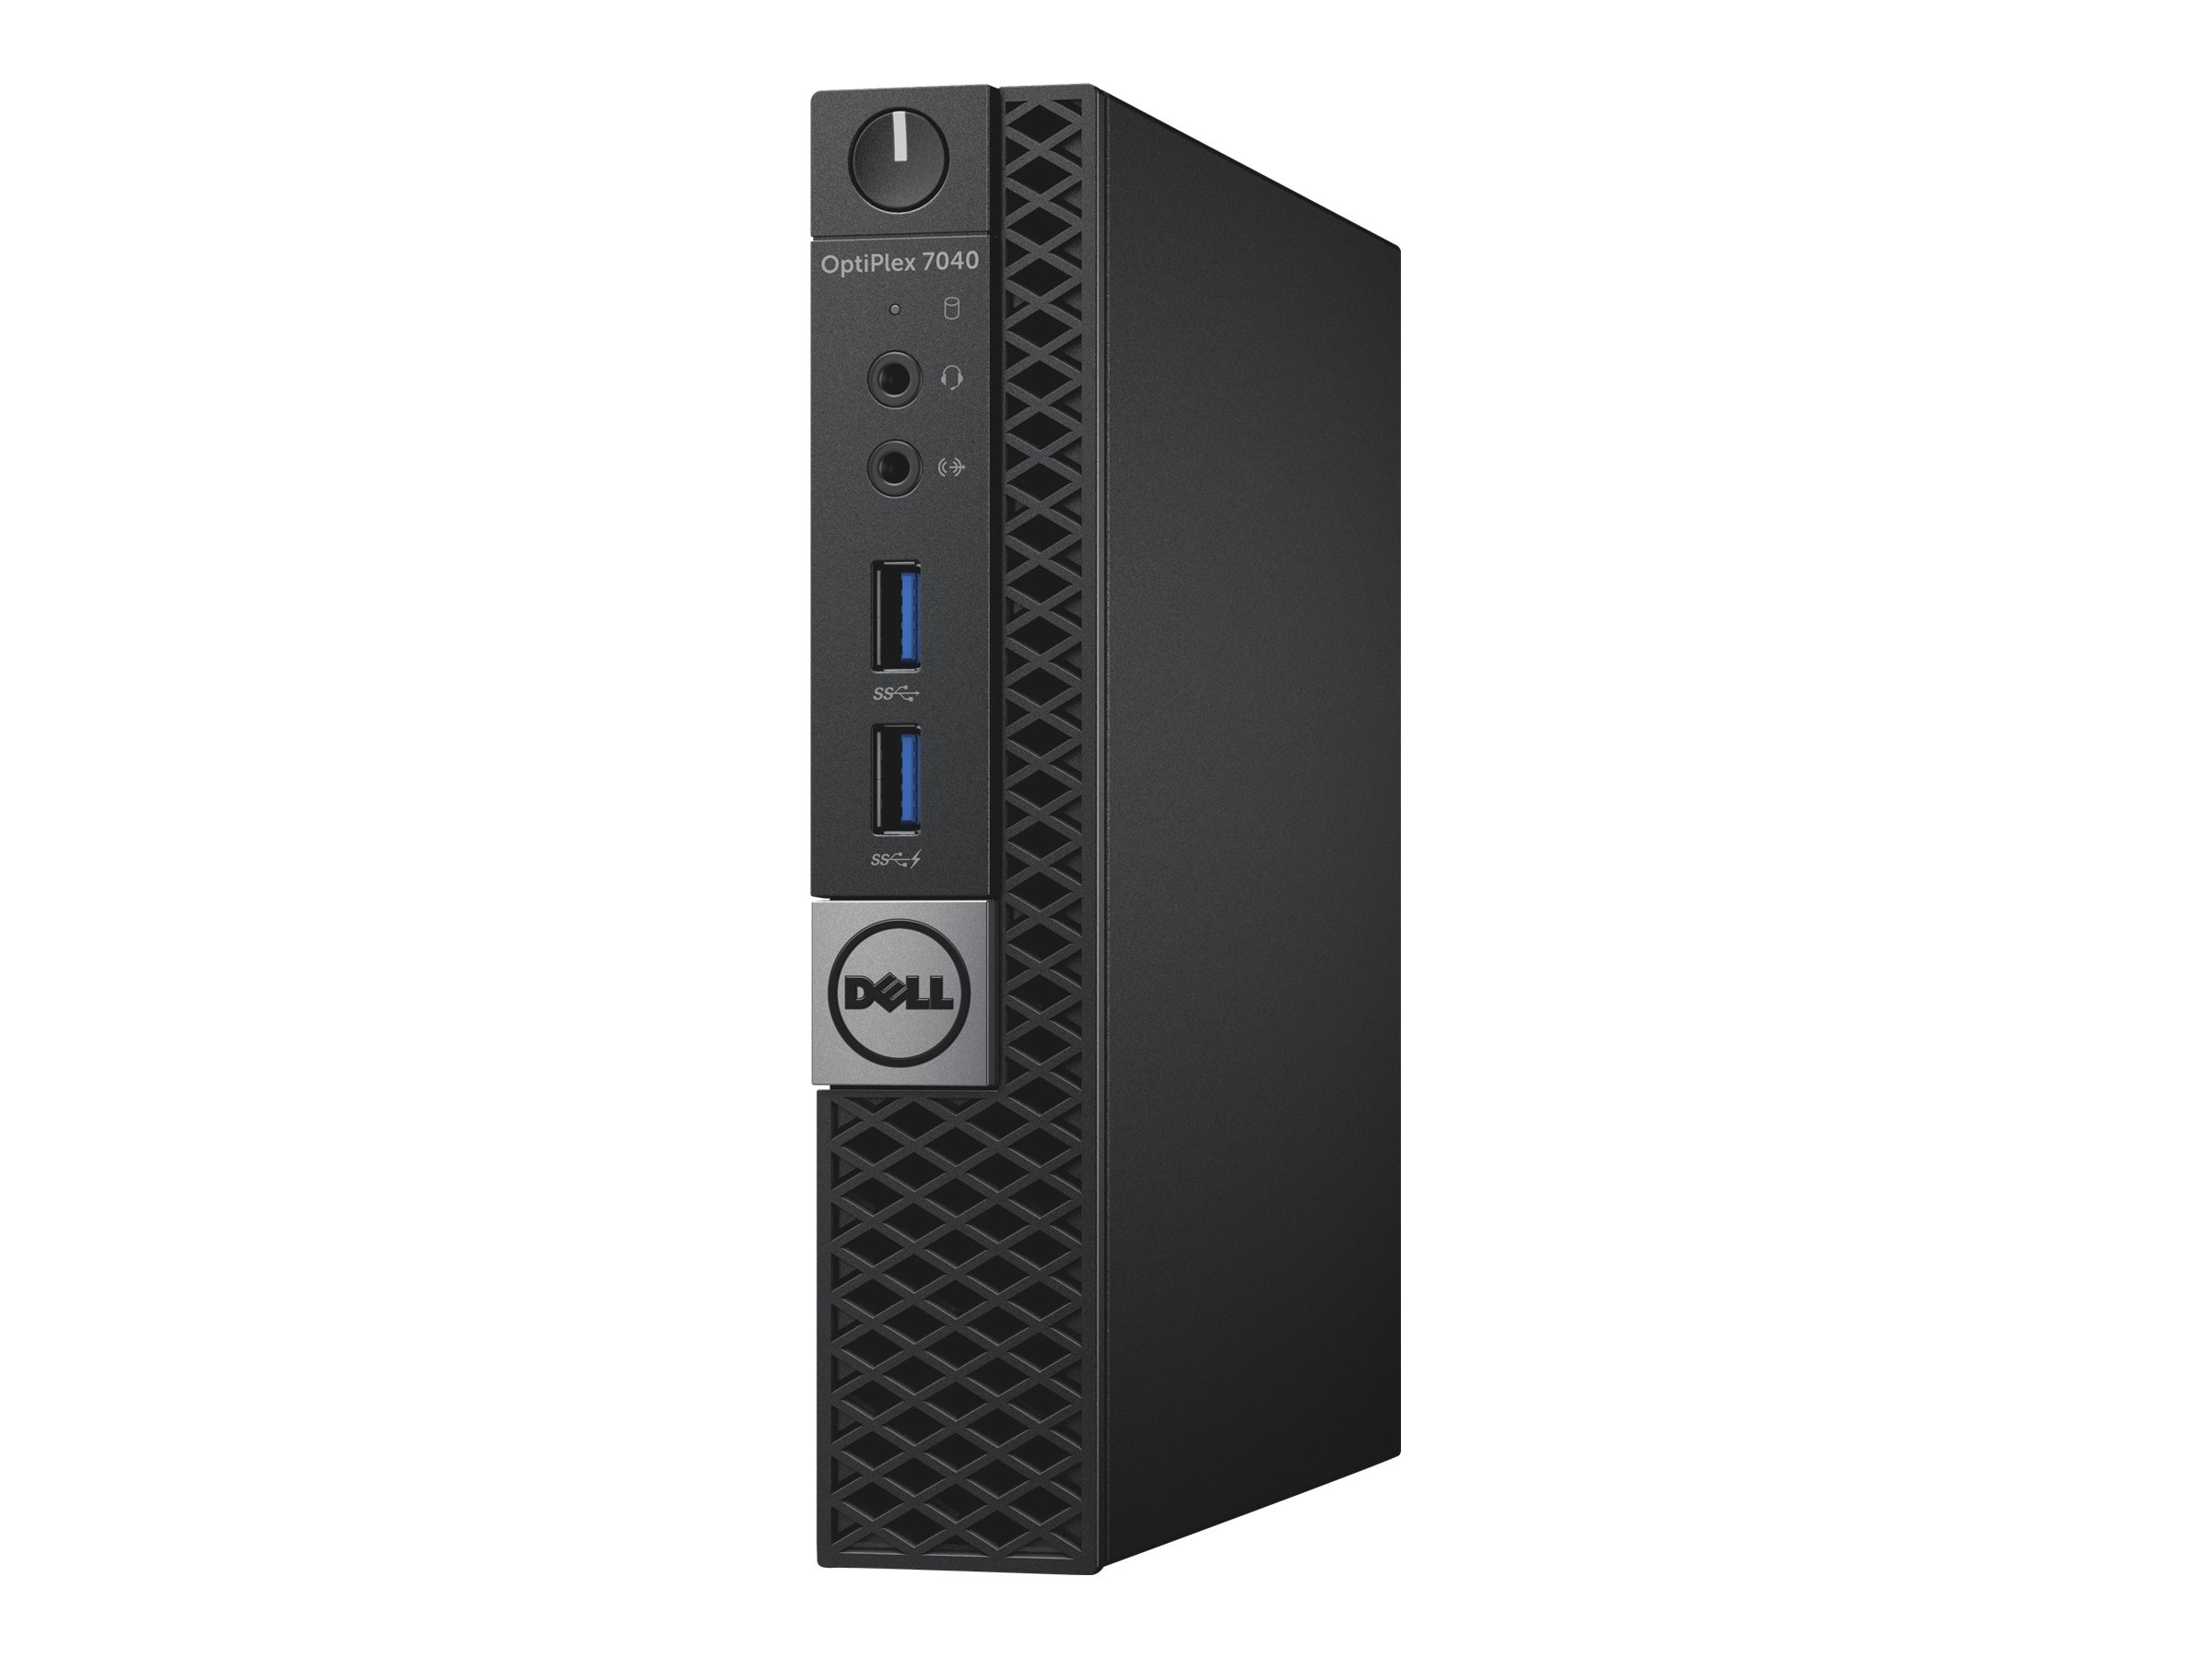 Dell OptiPlex 7040 2.5GHz Core i5 4GB RAM 500GB hard drive, 2DDHT